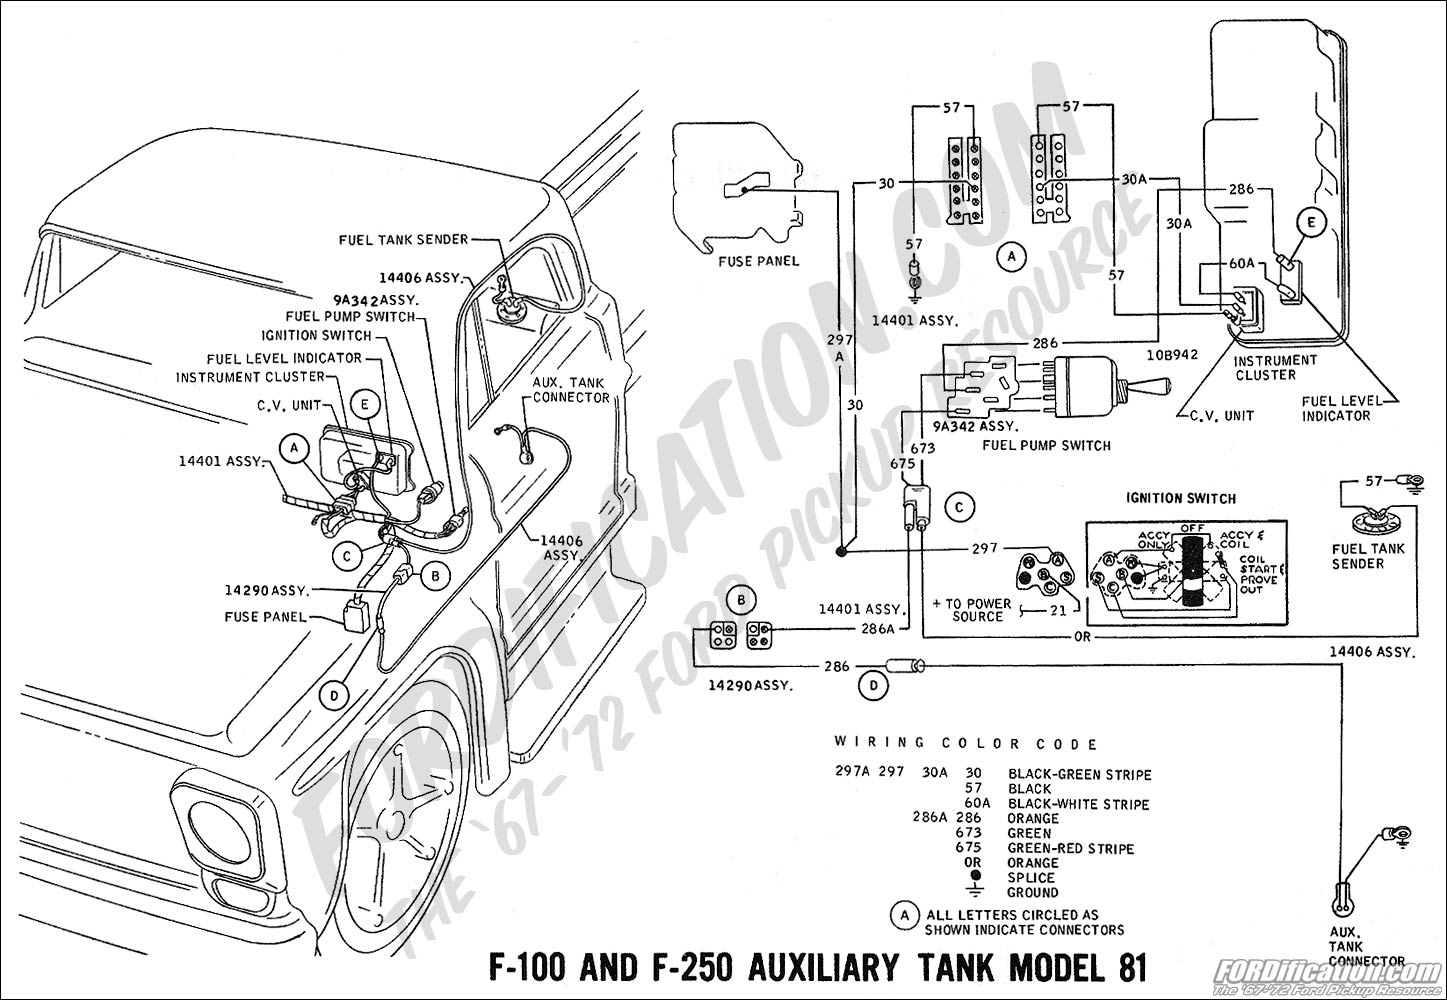 86 Ford F700 Wiring Diagram, 86, Get Free Image About